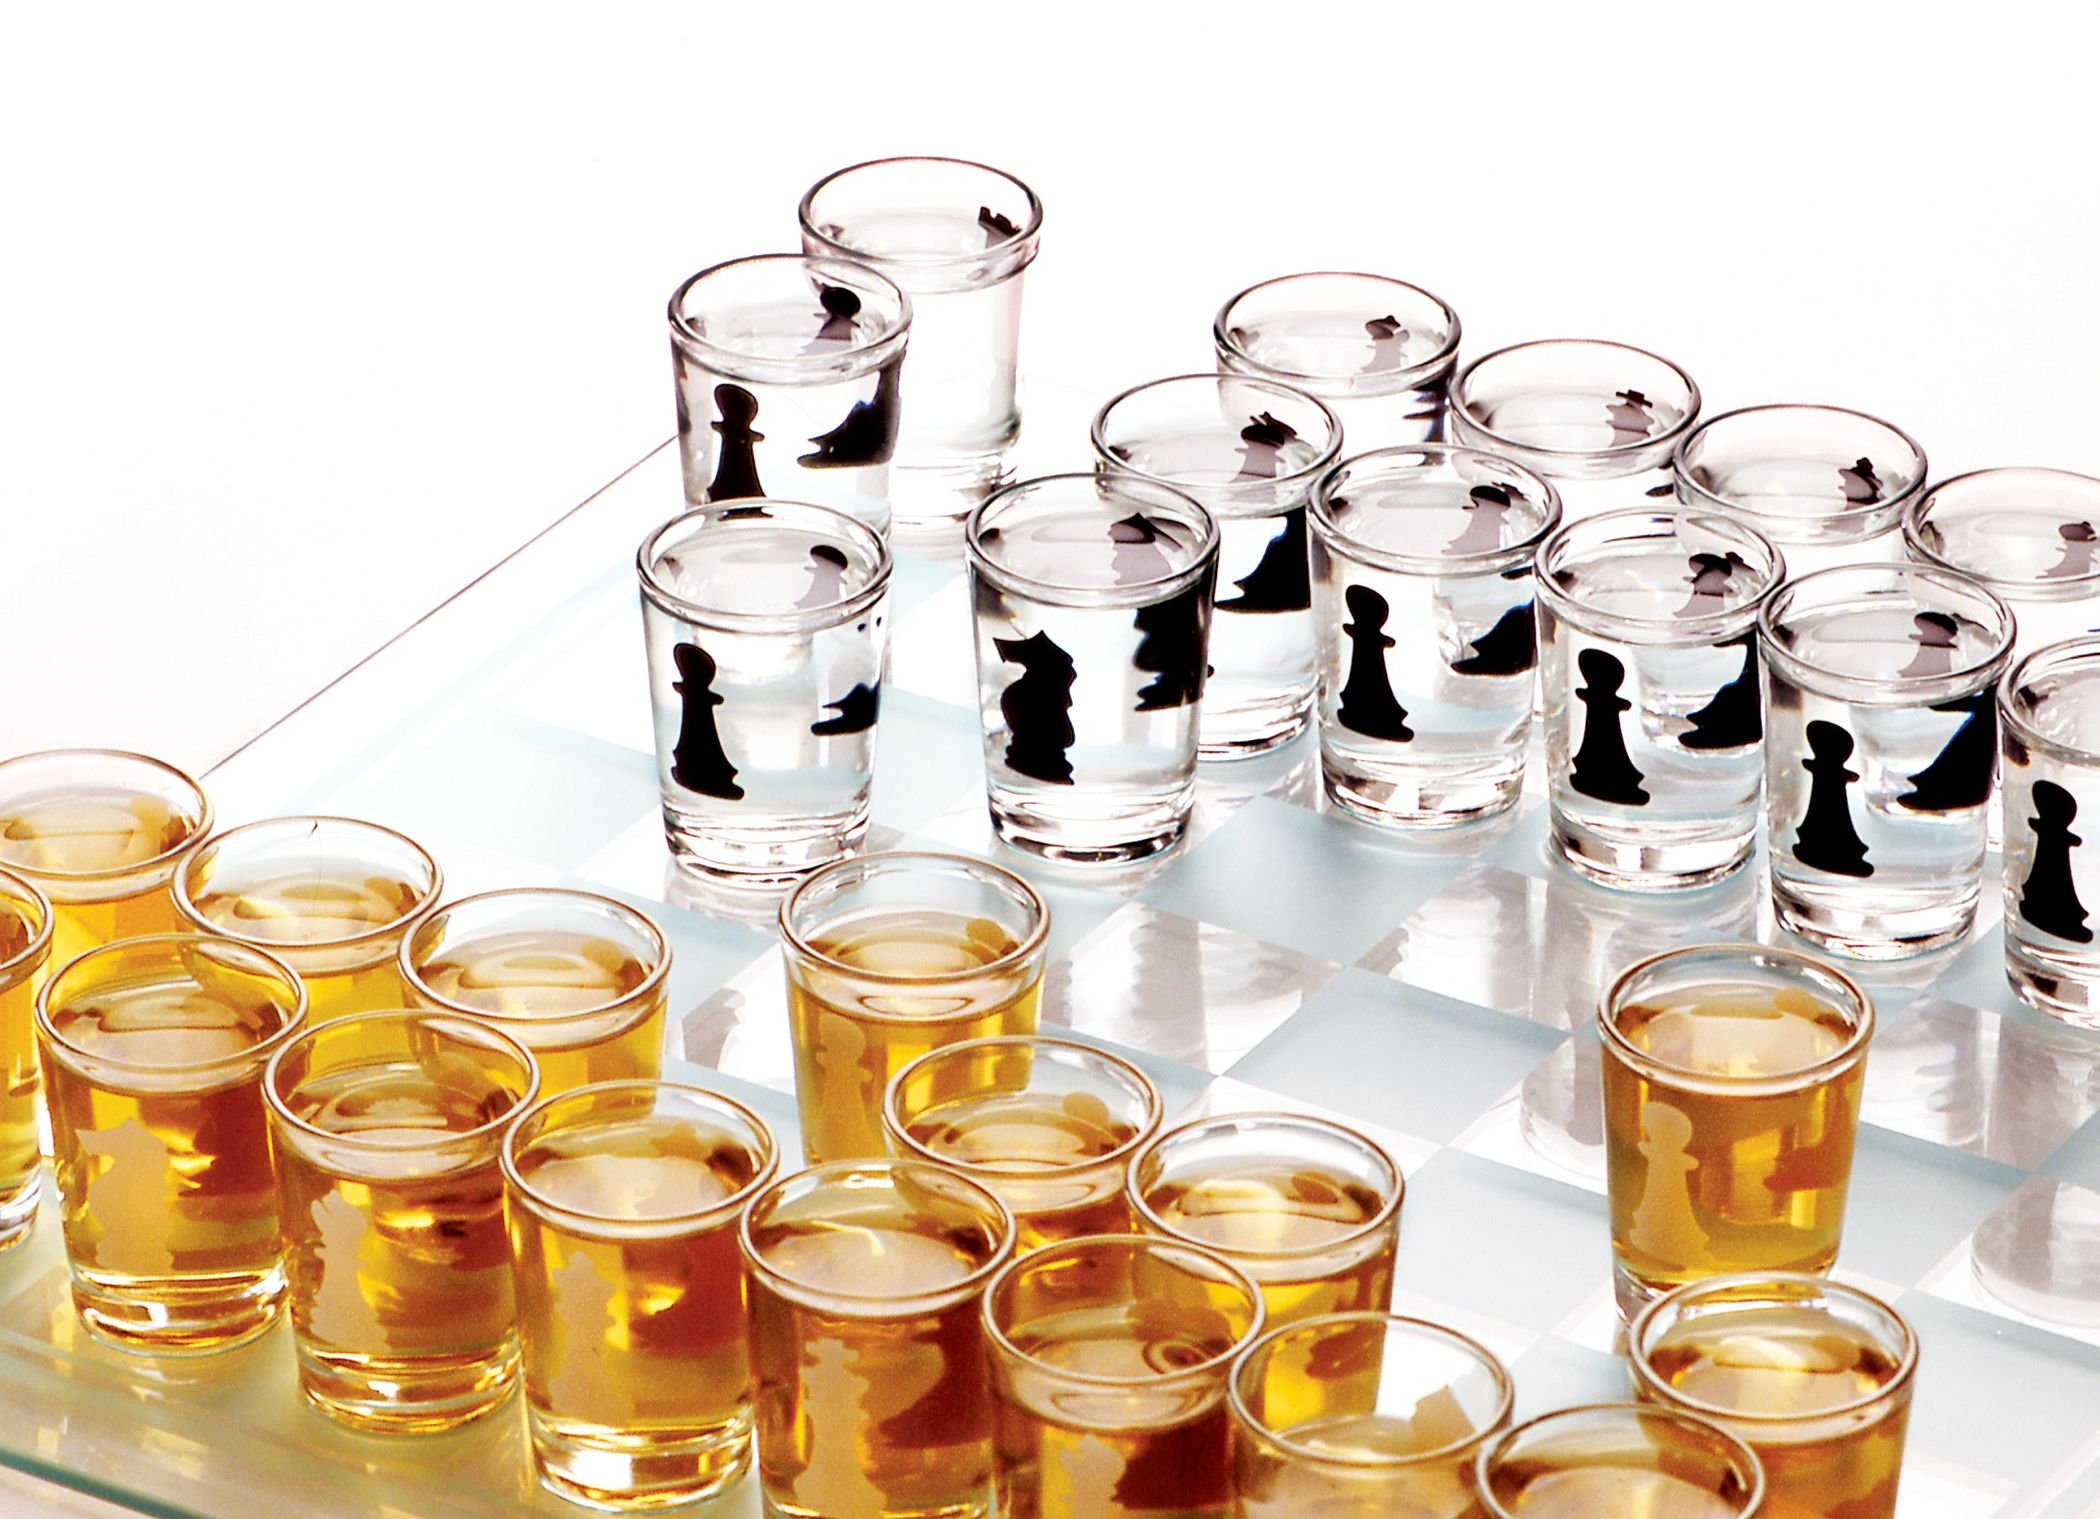 Home Essentials & Beyond Funville Chess Drinking Game with Shot Glasses, Clear by Home Essentials & Beyond